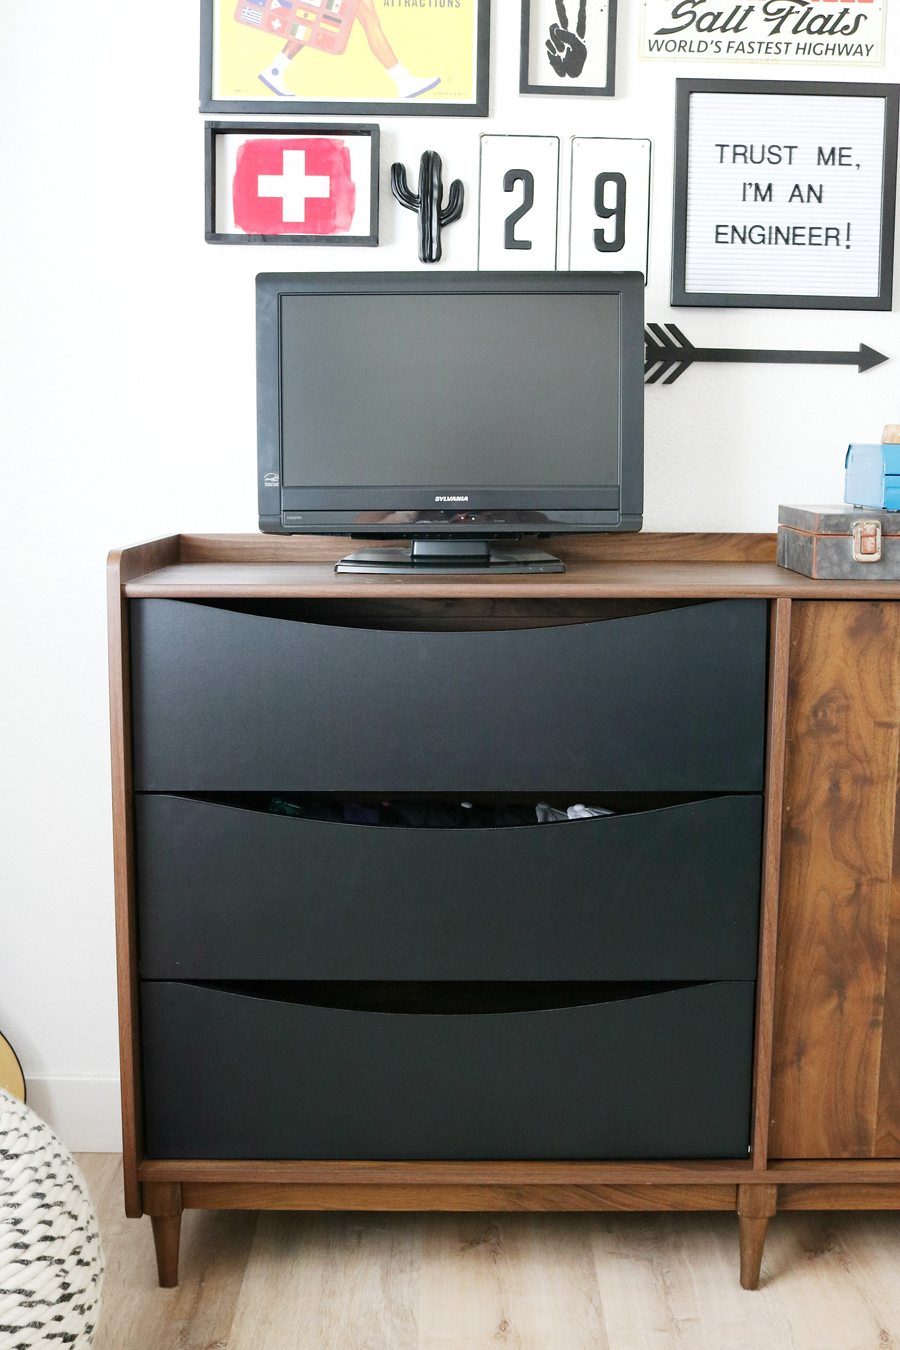 Teen Boy's Room Storage Solutions - Better Homes & Gardens Montclair TV Stand with contrasting black drawers